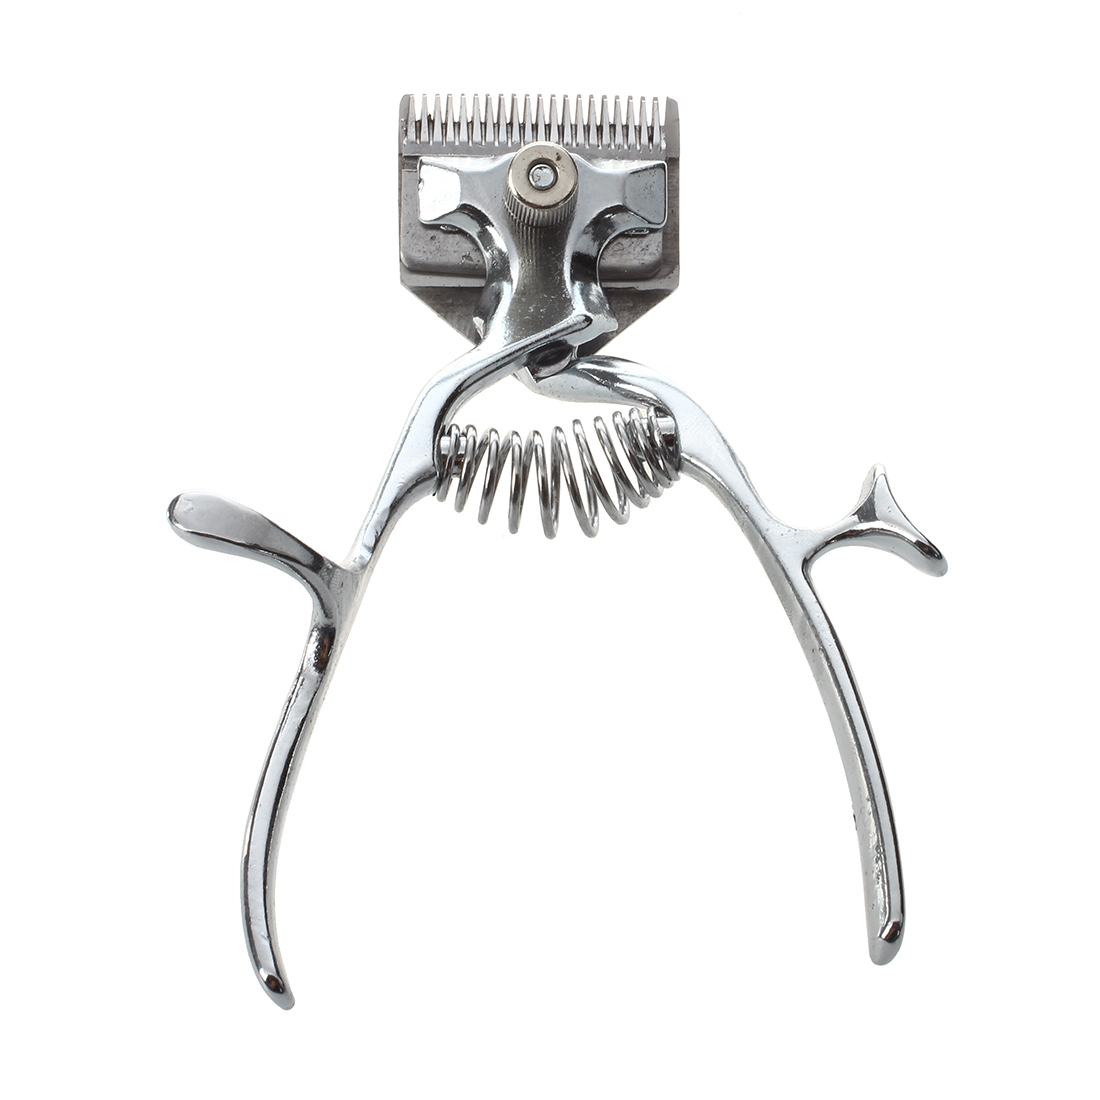 Hair Country Hand Hair Clippers Manual Metal Portable